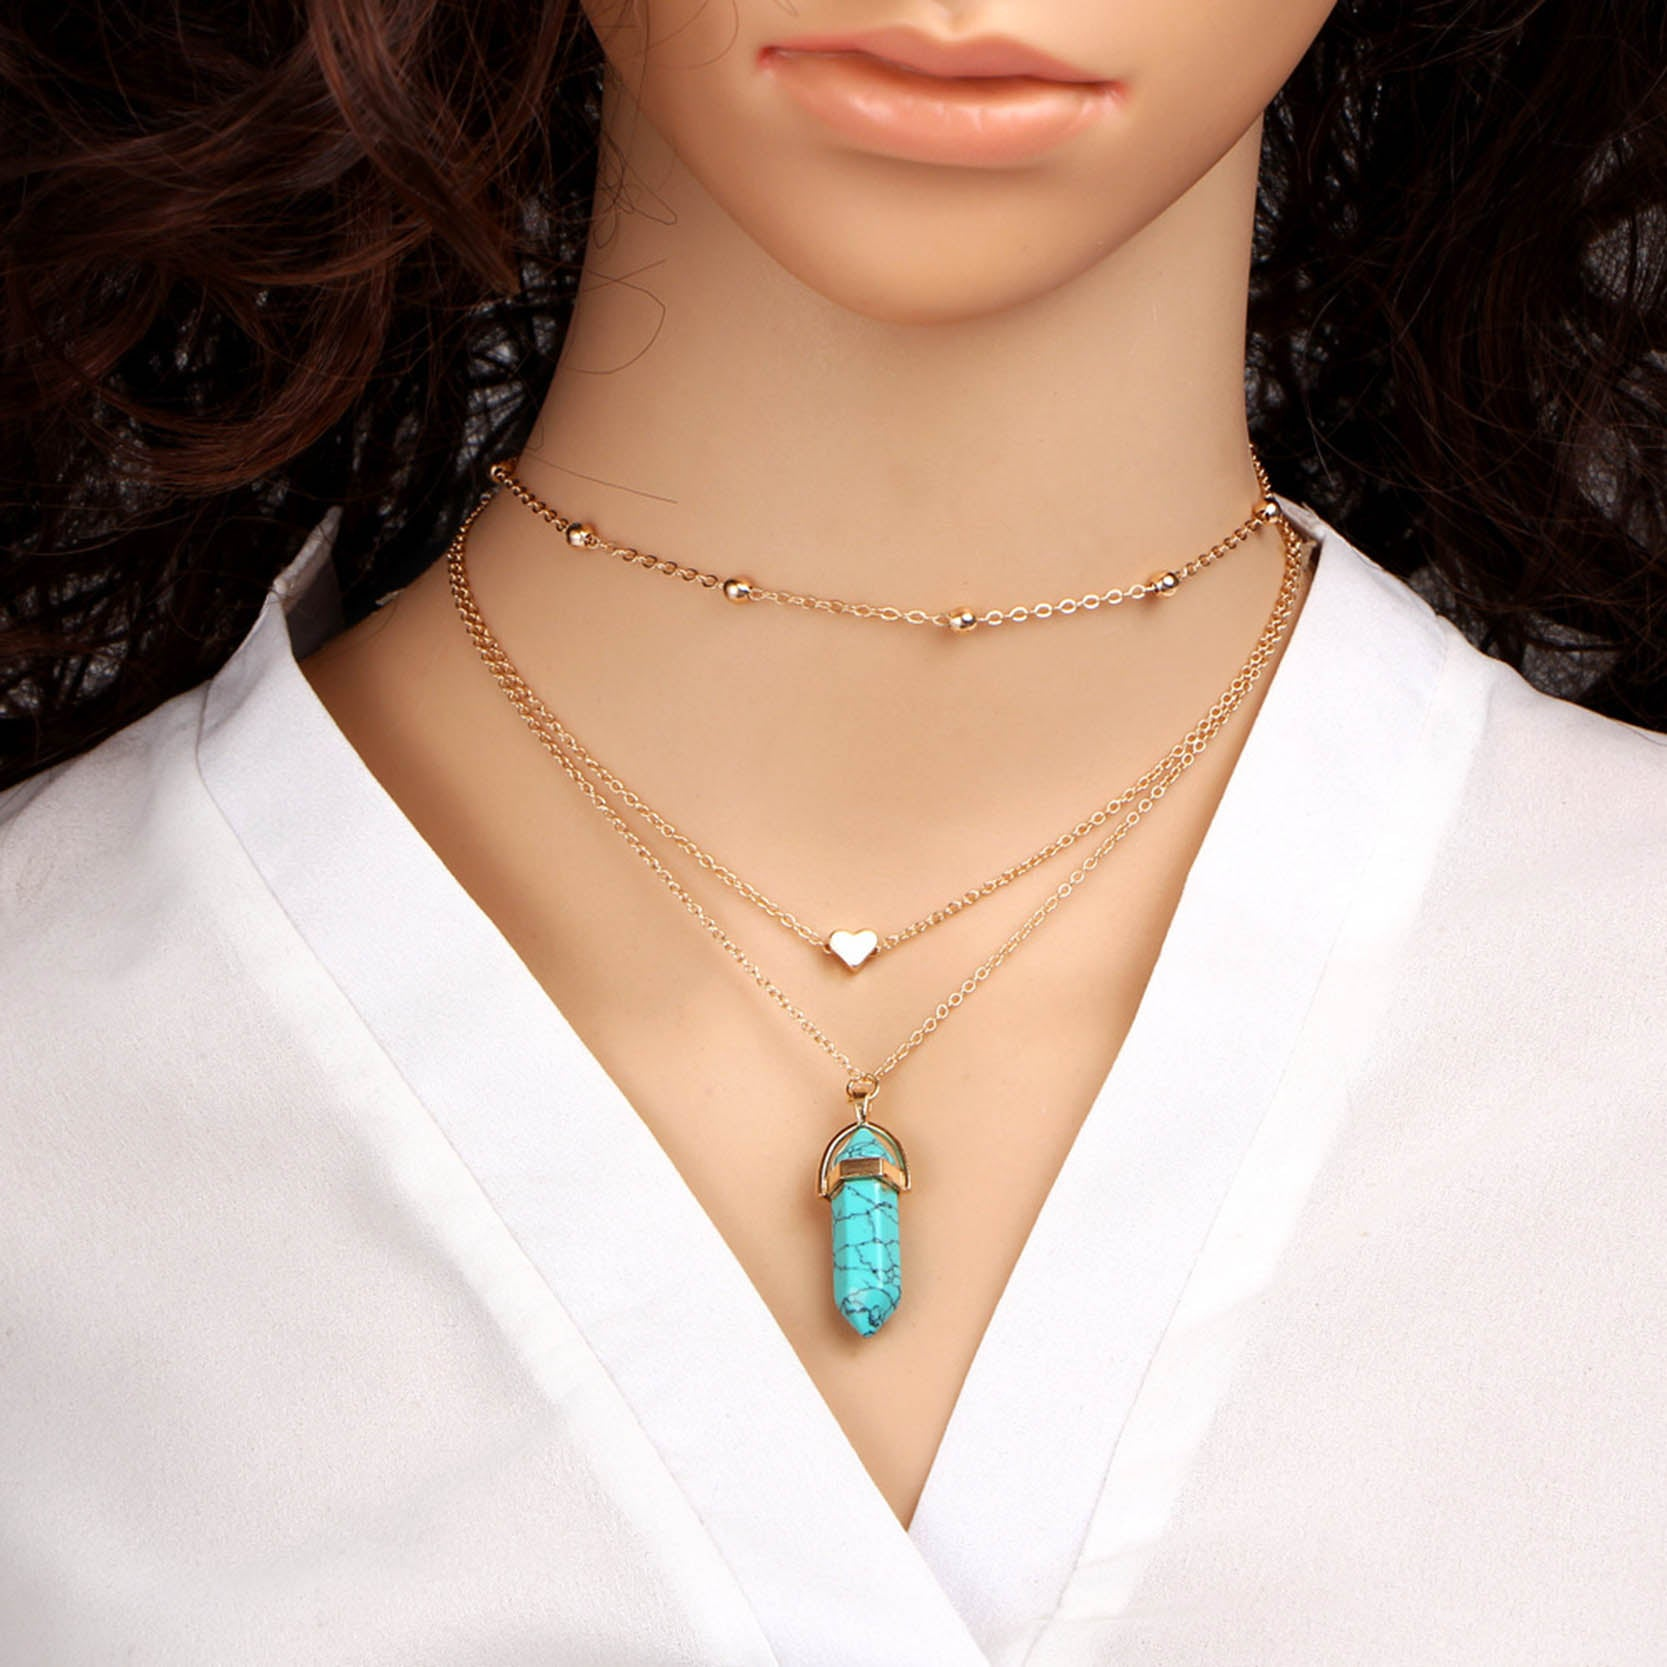 Triple Chain Crystal Choker Necklace - Turquoise